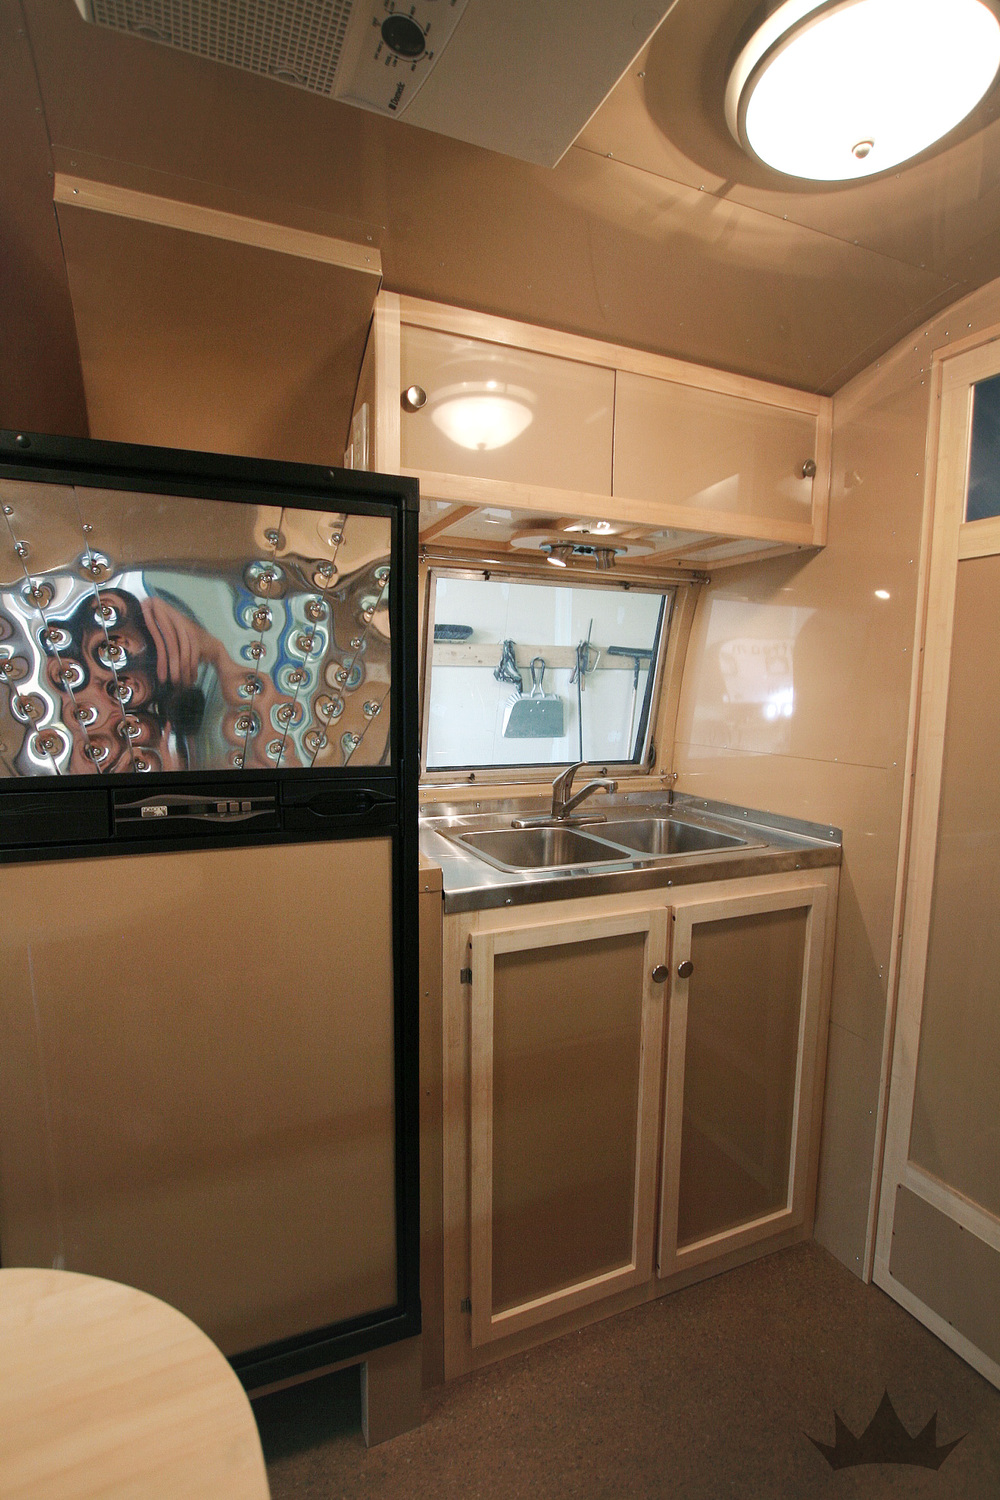 An overview of the interior : A double basin sink and large fridge were masterfully worked in.